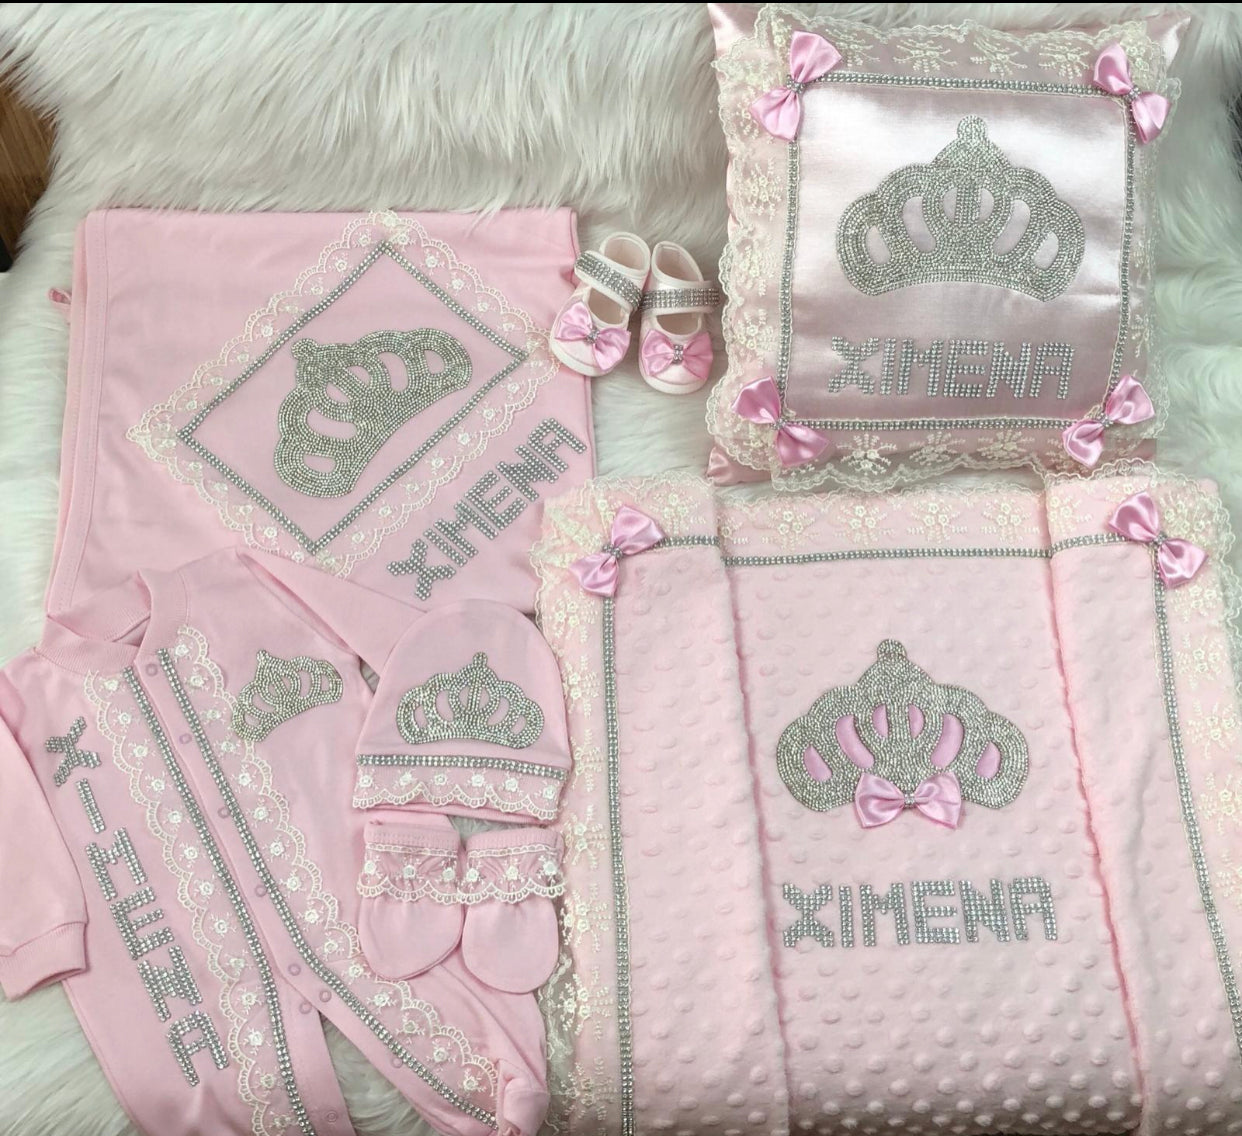 7 Pieces Princess Set Pink